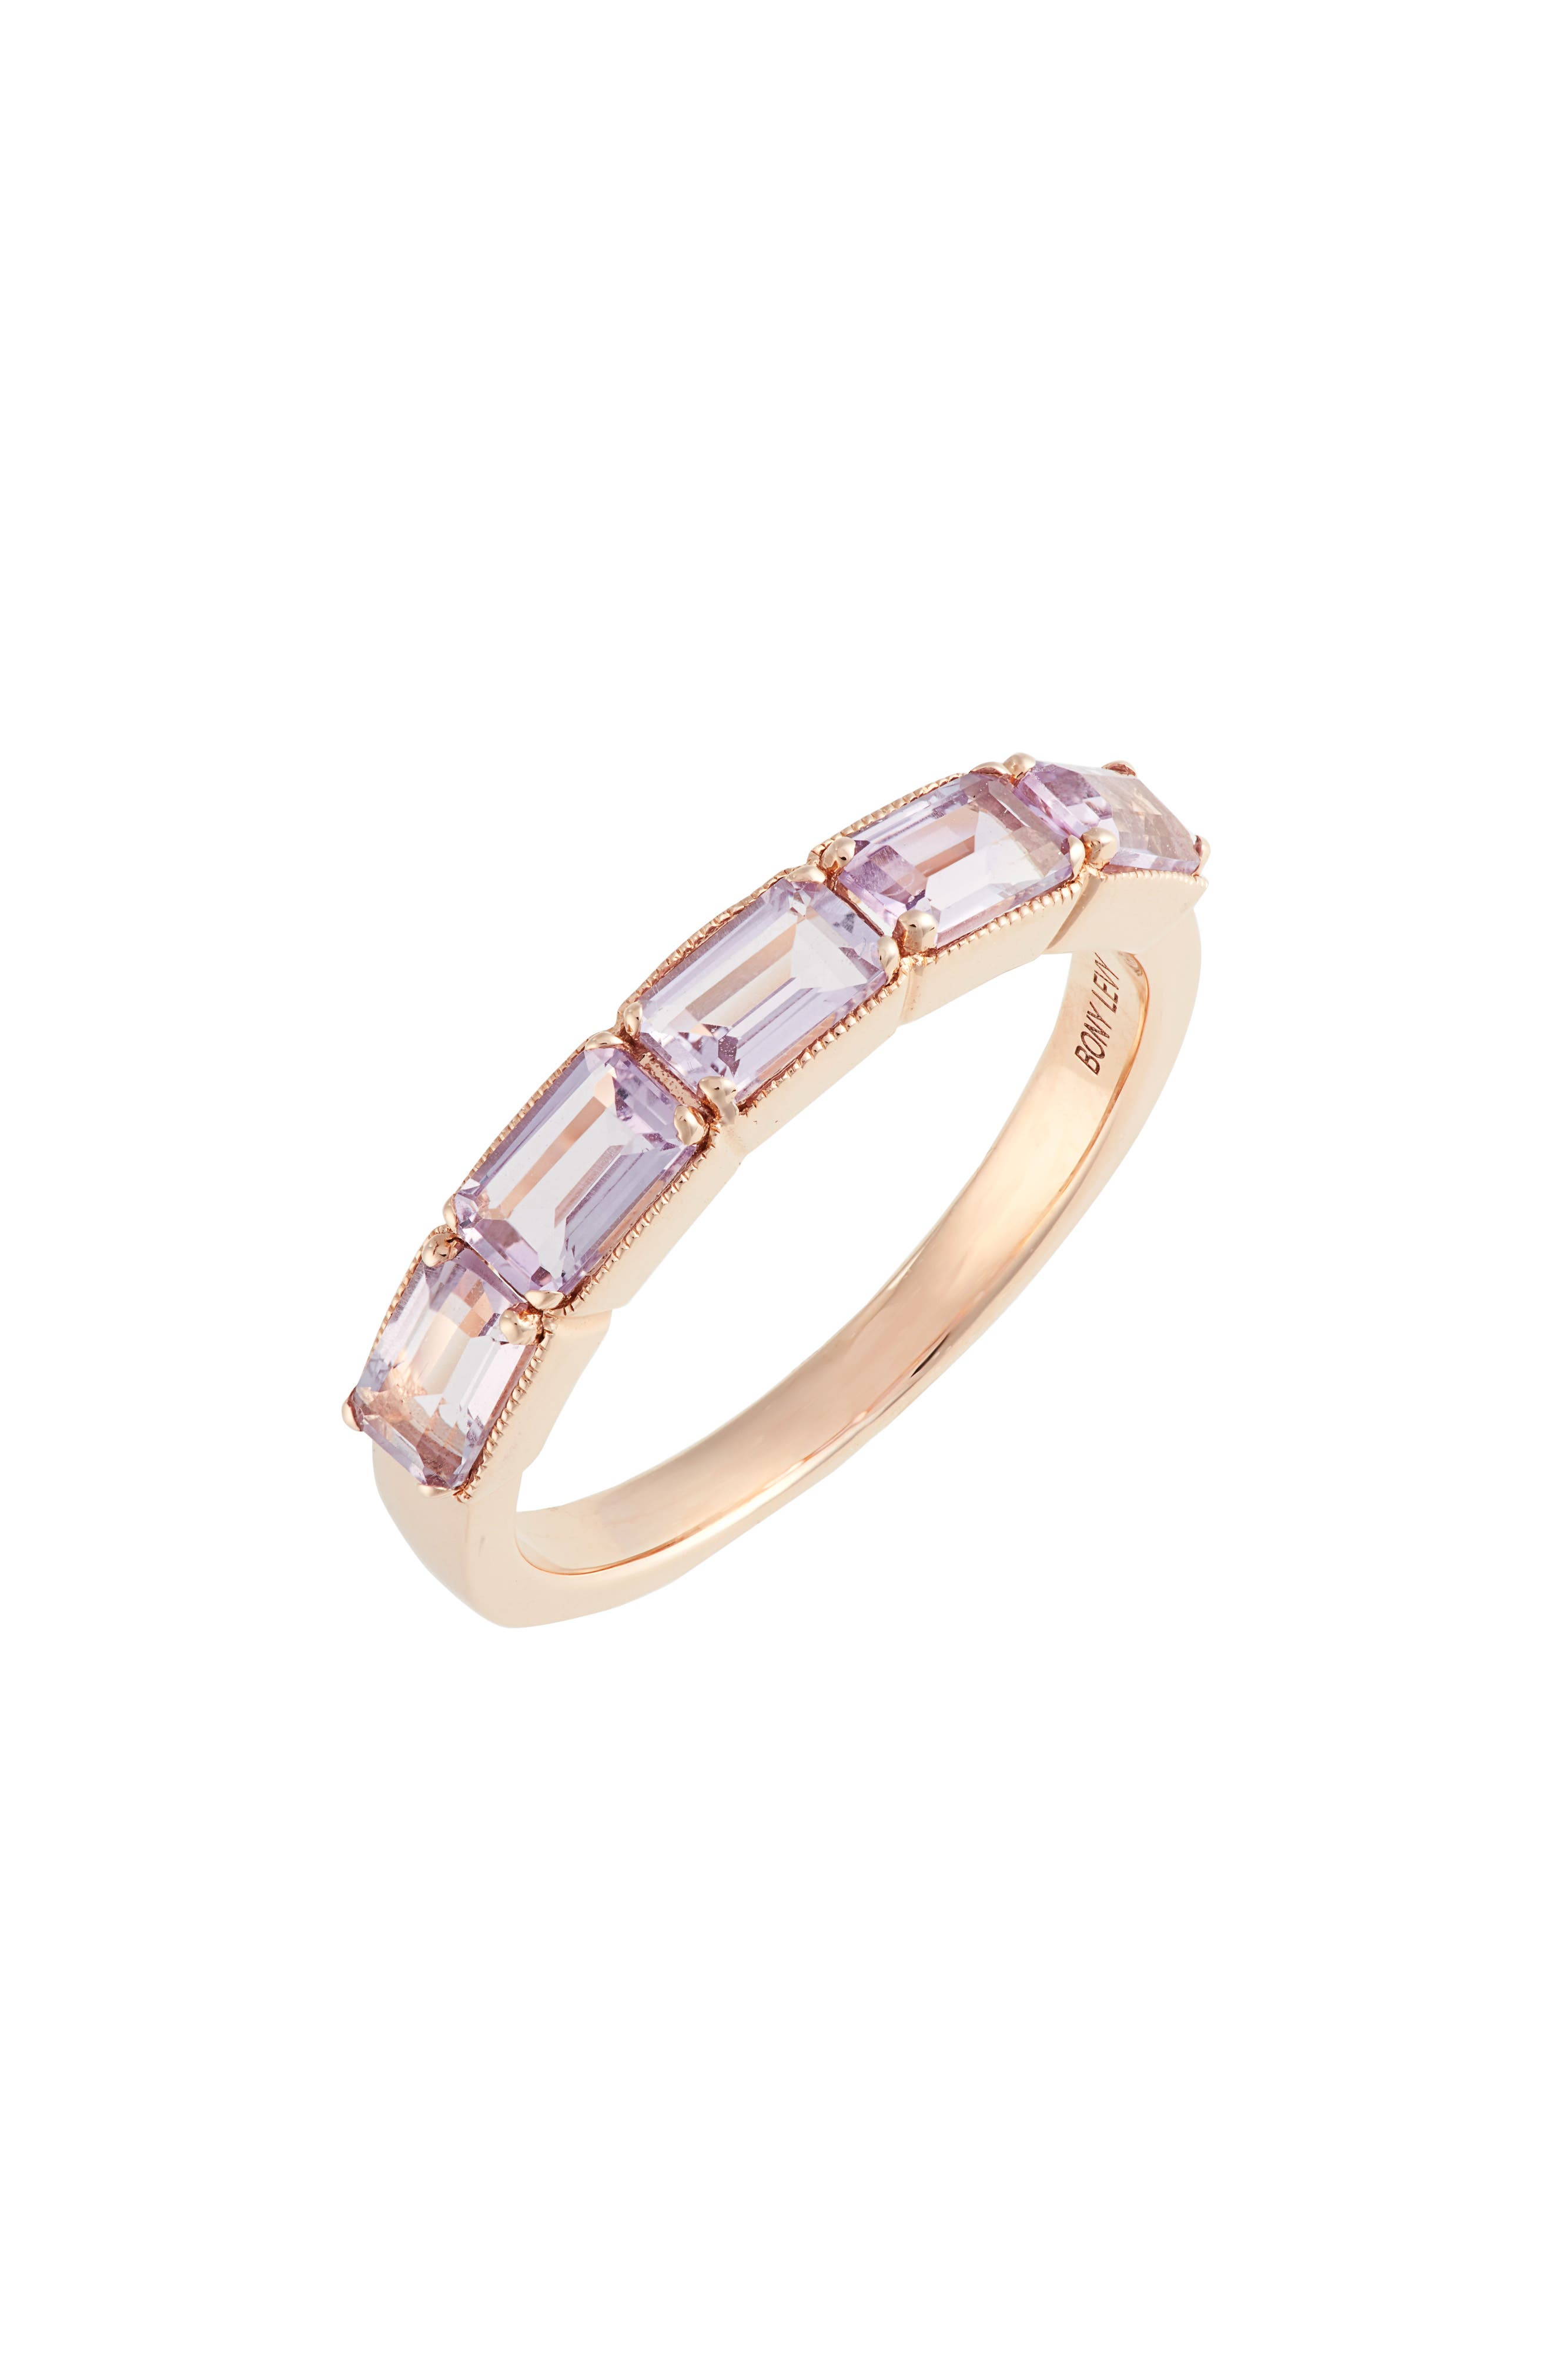 Purple Amethyst Baguette Stack Ring,                             Main thumbnail 1, color,                             AMETHYST/ ROSE GOLD